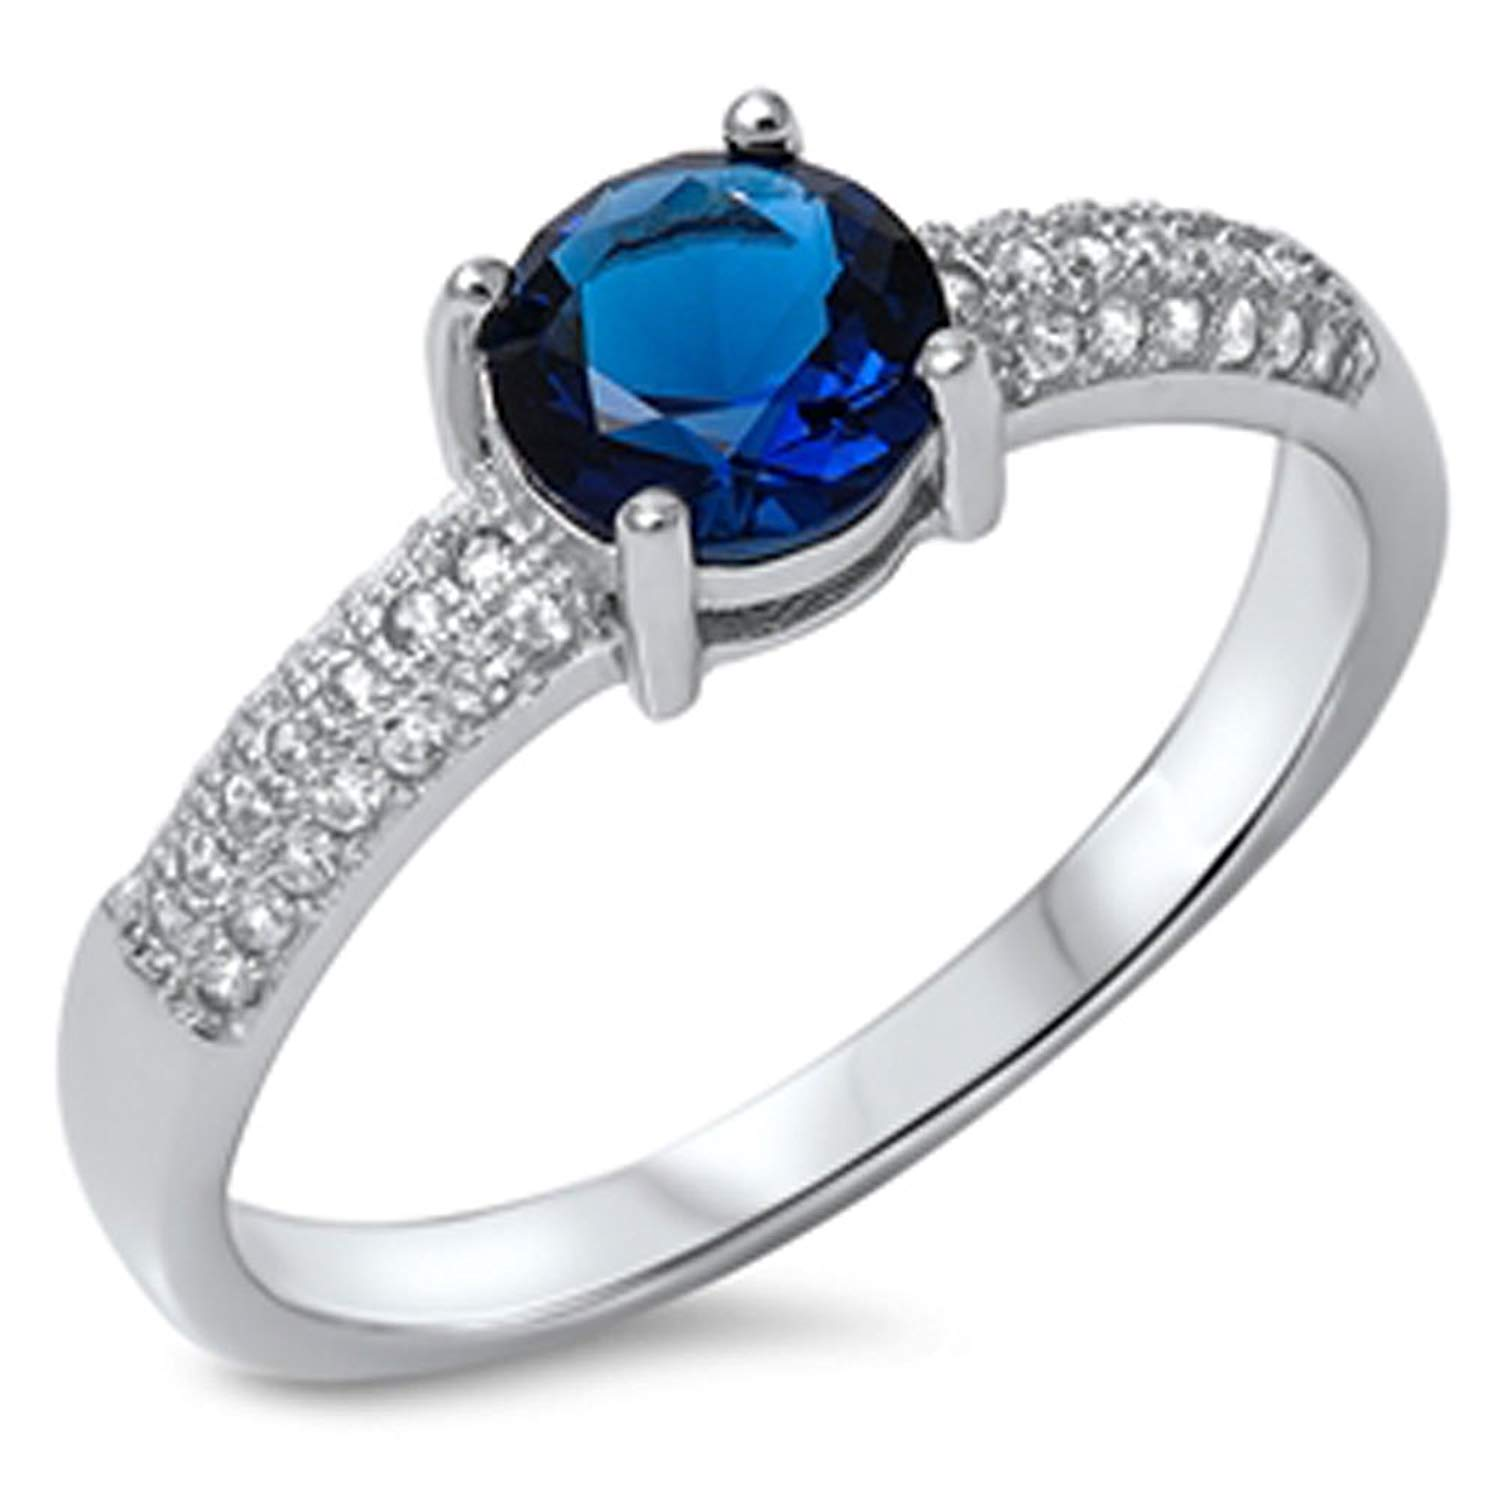 Noureda Sterling Silver Classy Round Cut Blue Sapphire Cz Micro Paved Band Ring with Center Stone Size of 6MM